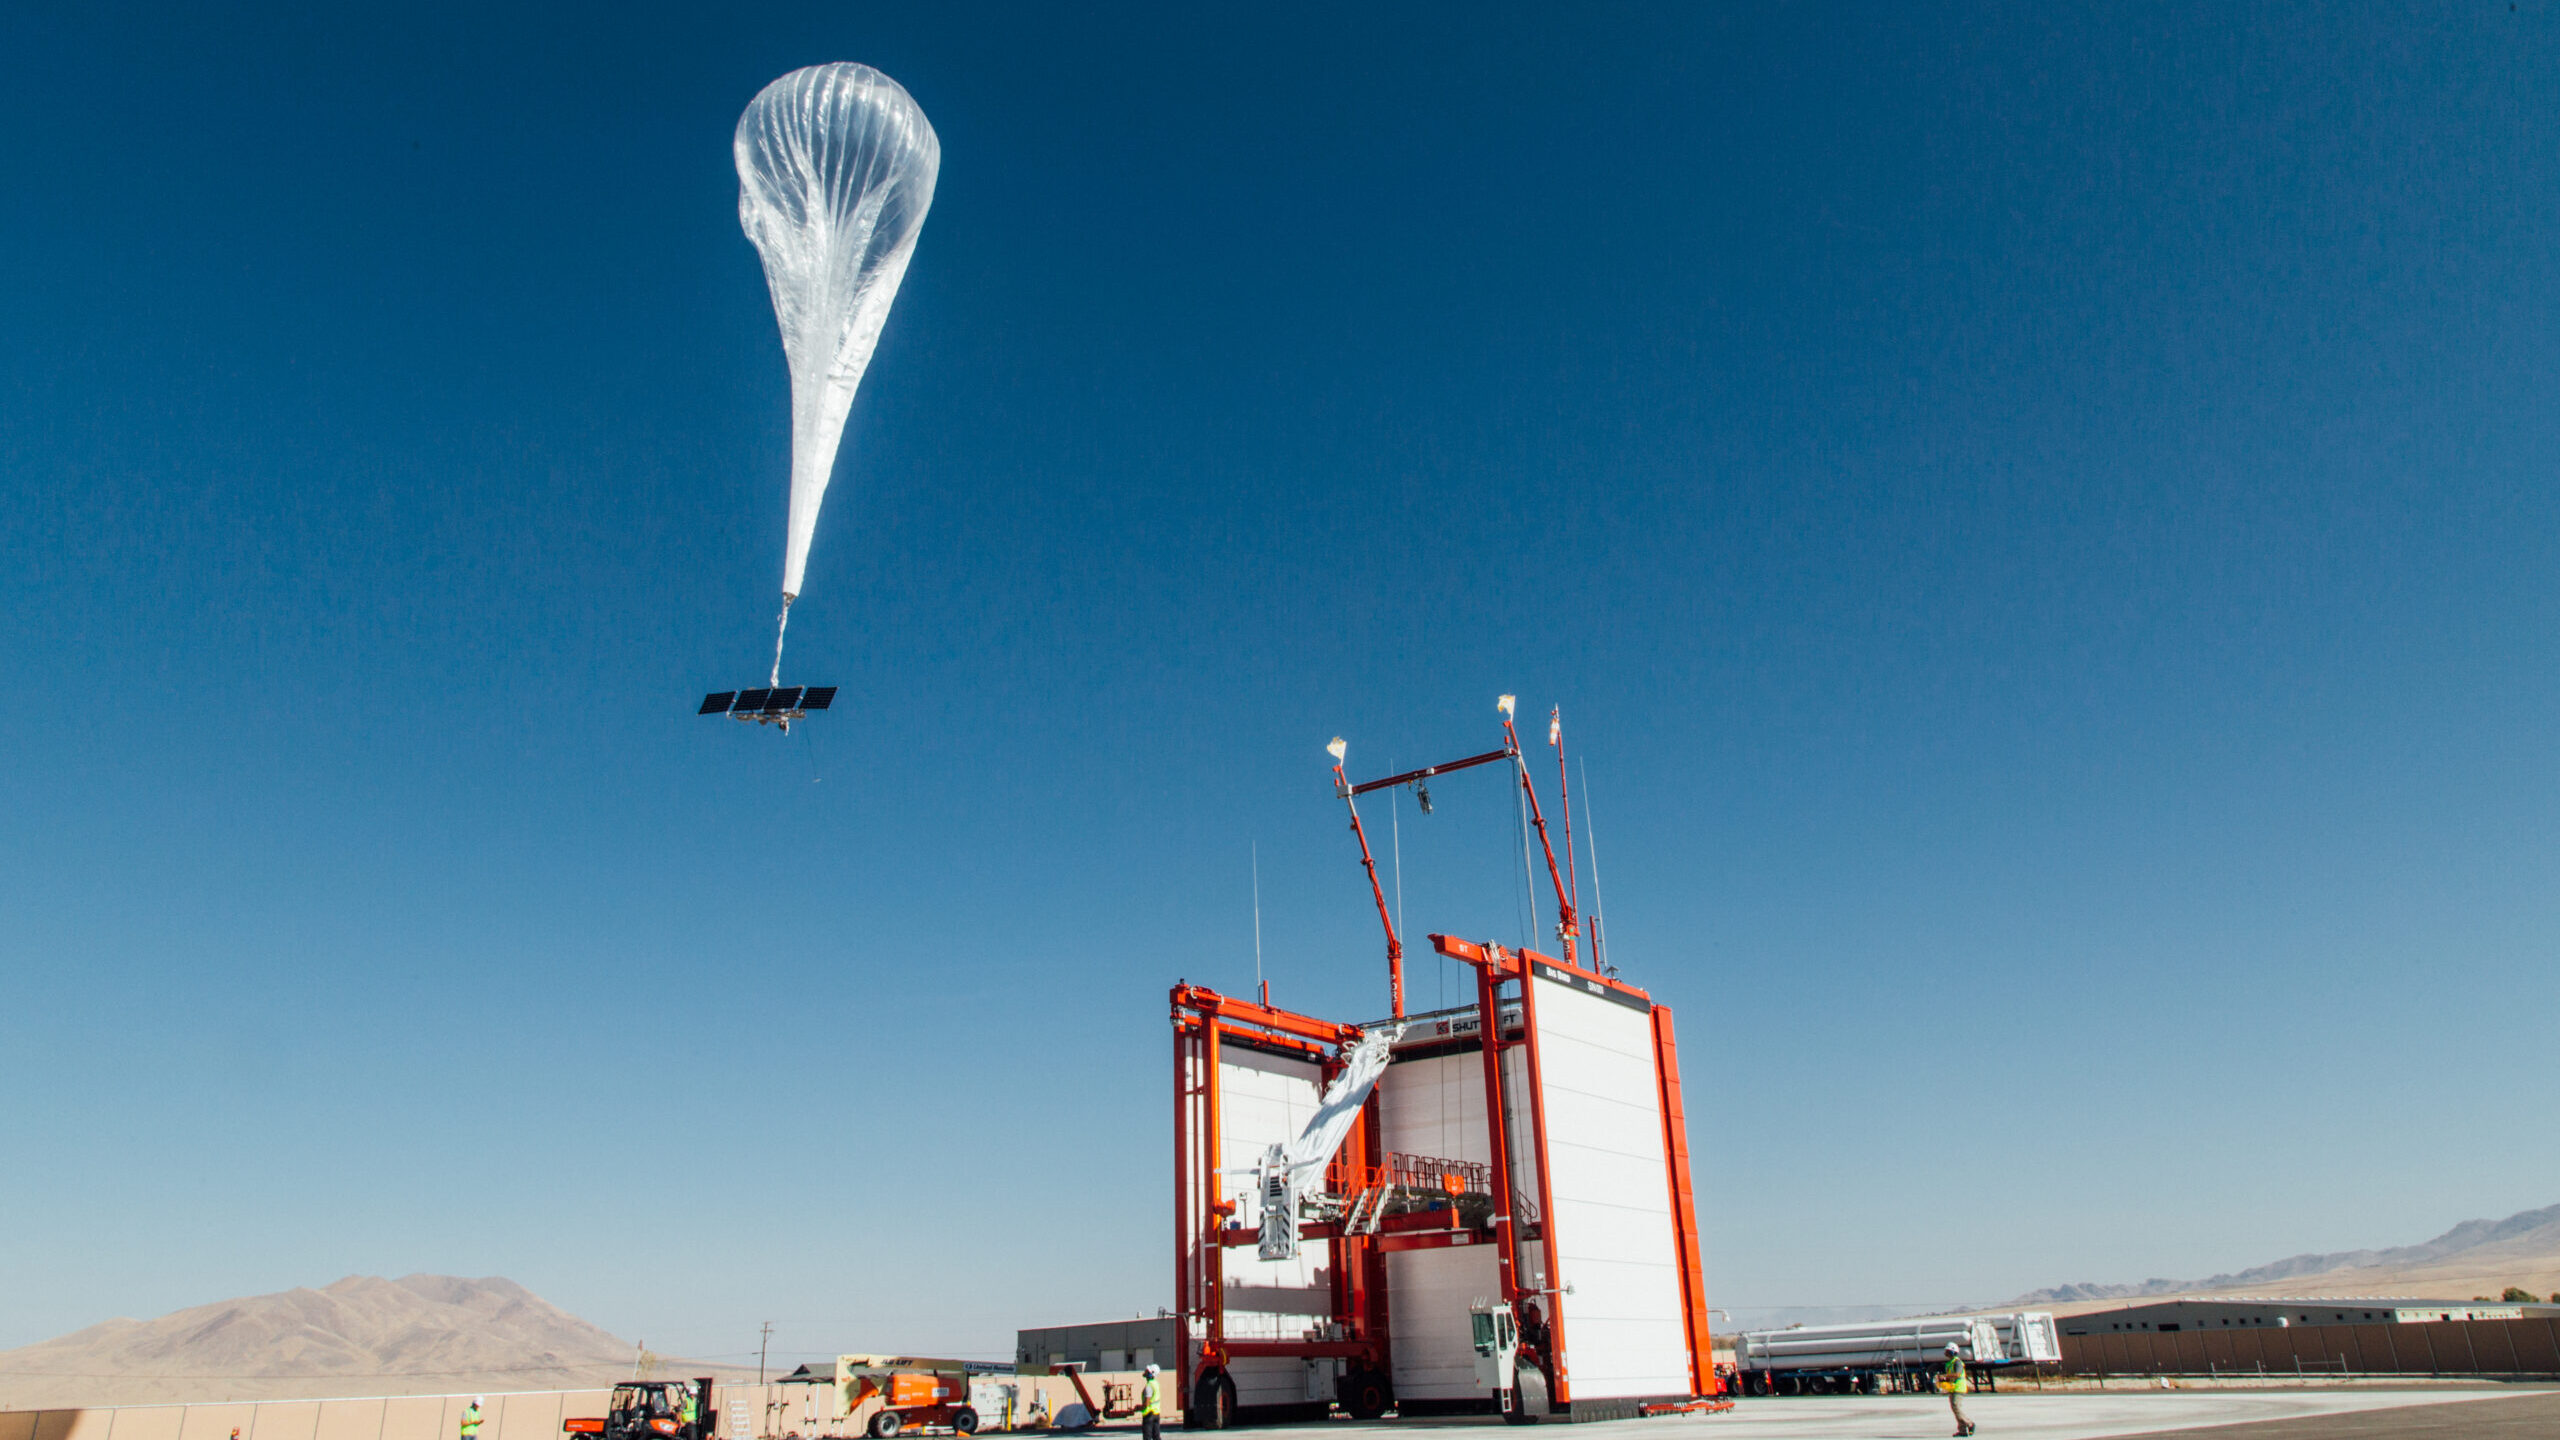 Deflated: Google Pulls Balloon Project That Provided Connectivity For Poor, Remote Areas